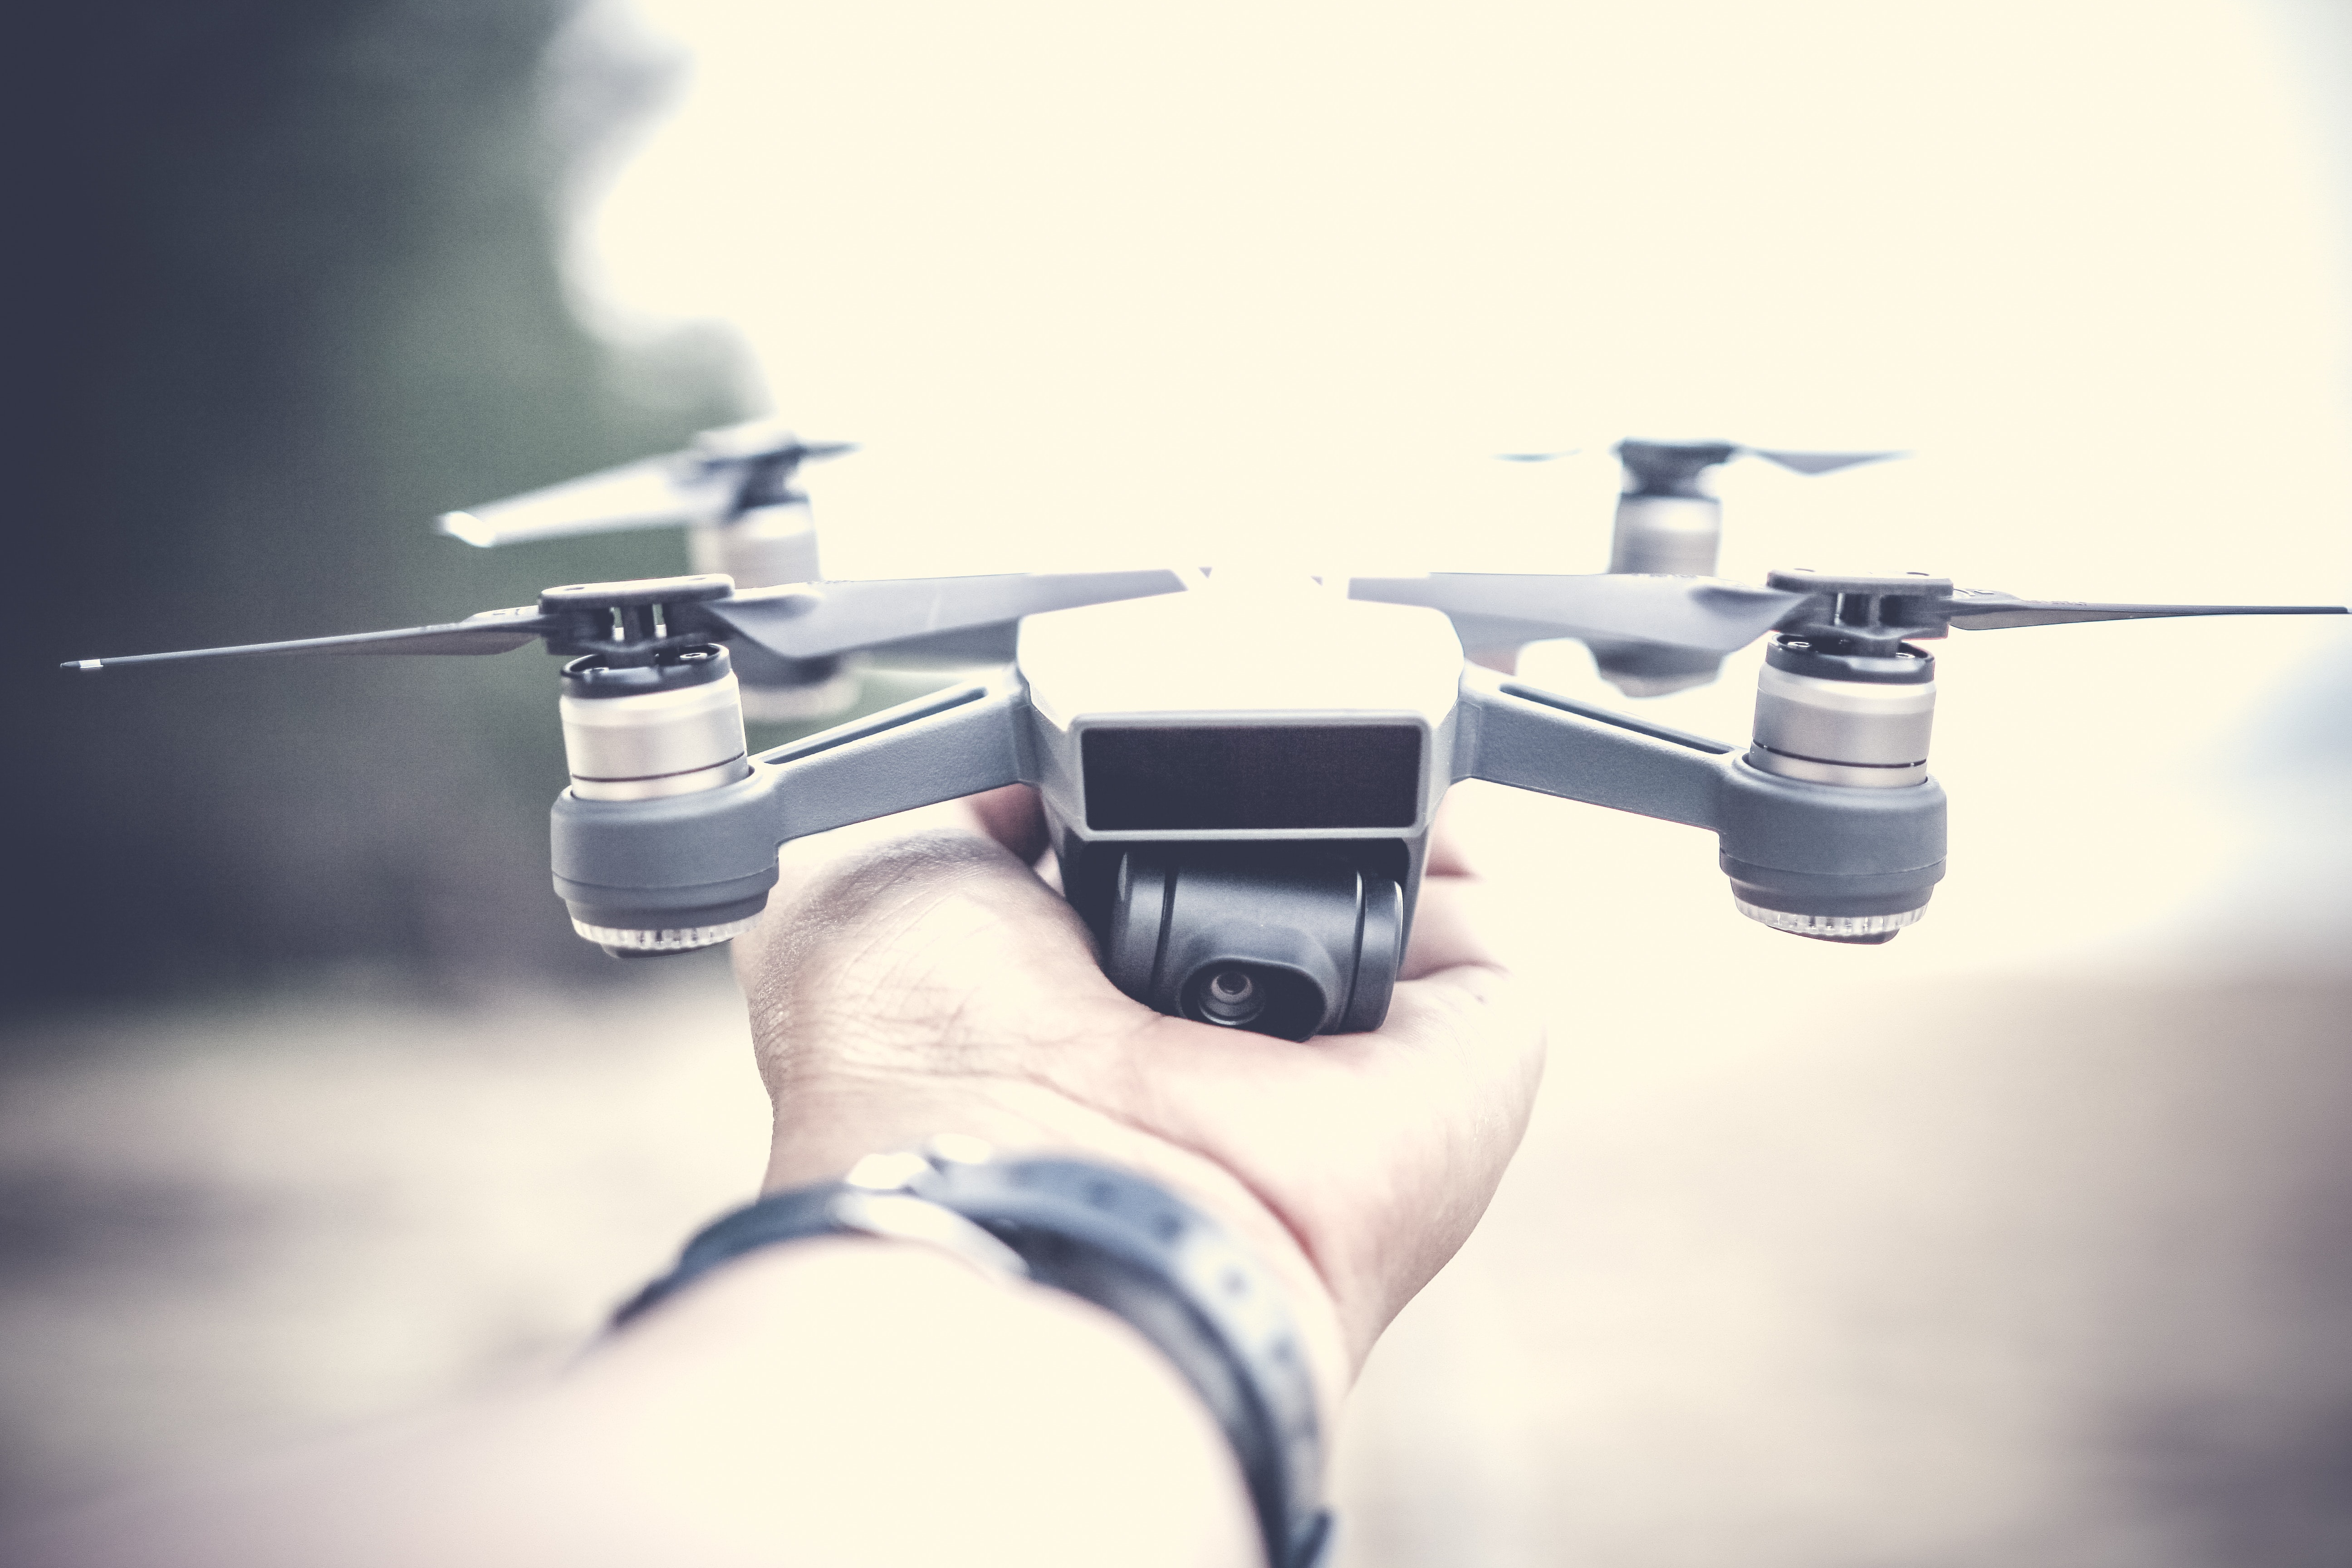 NZbrokers e-Bike and Drone Insurance advice